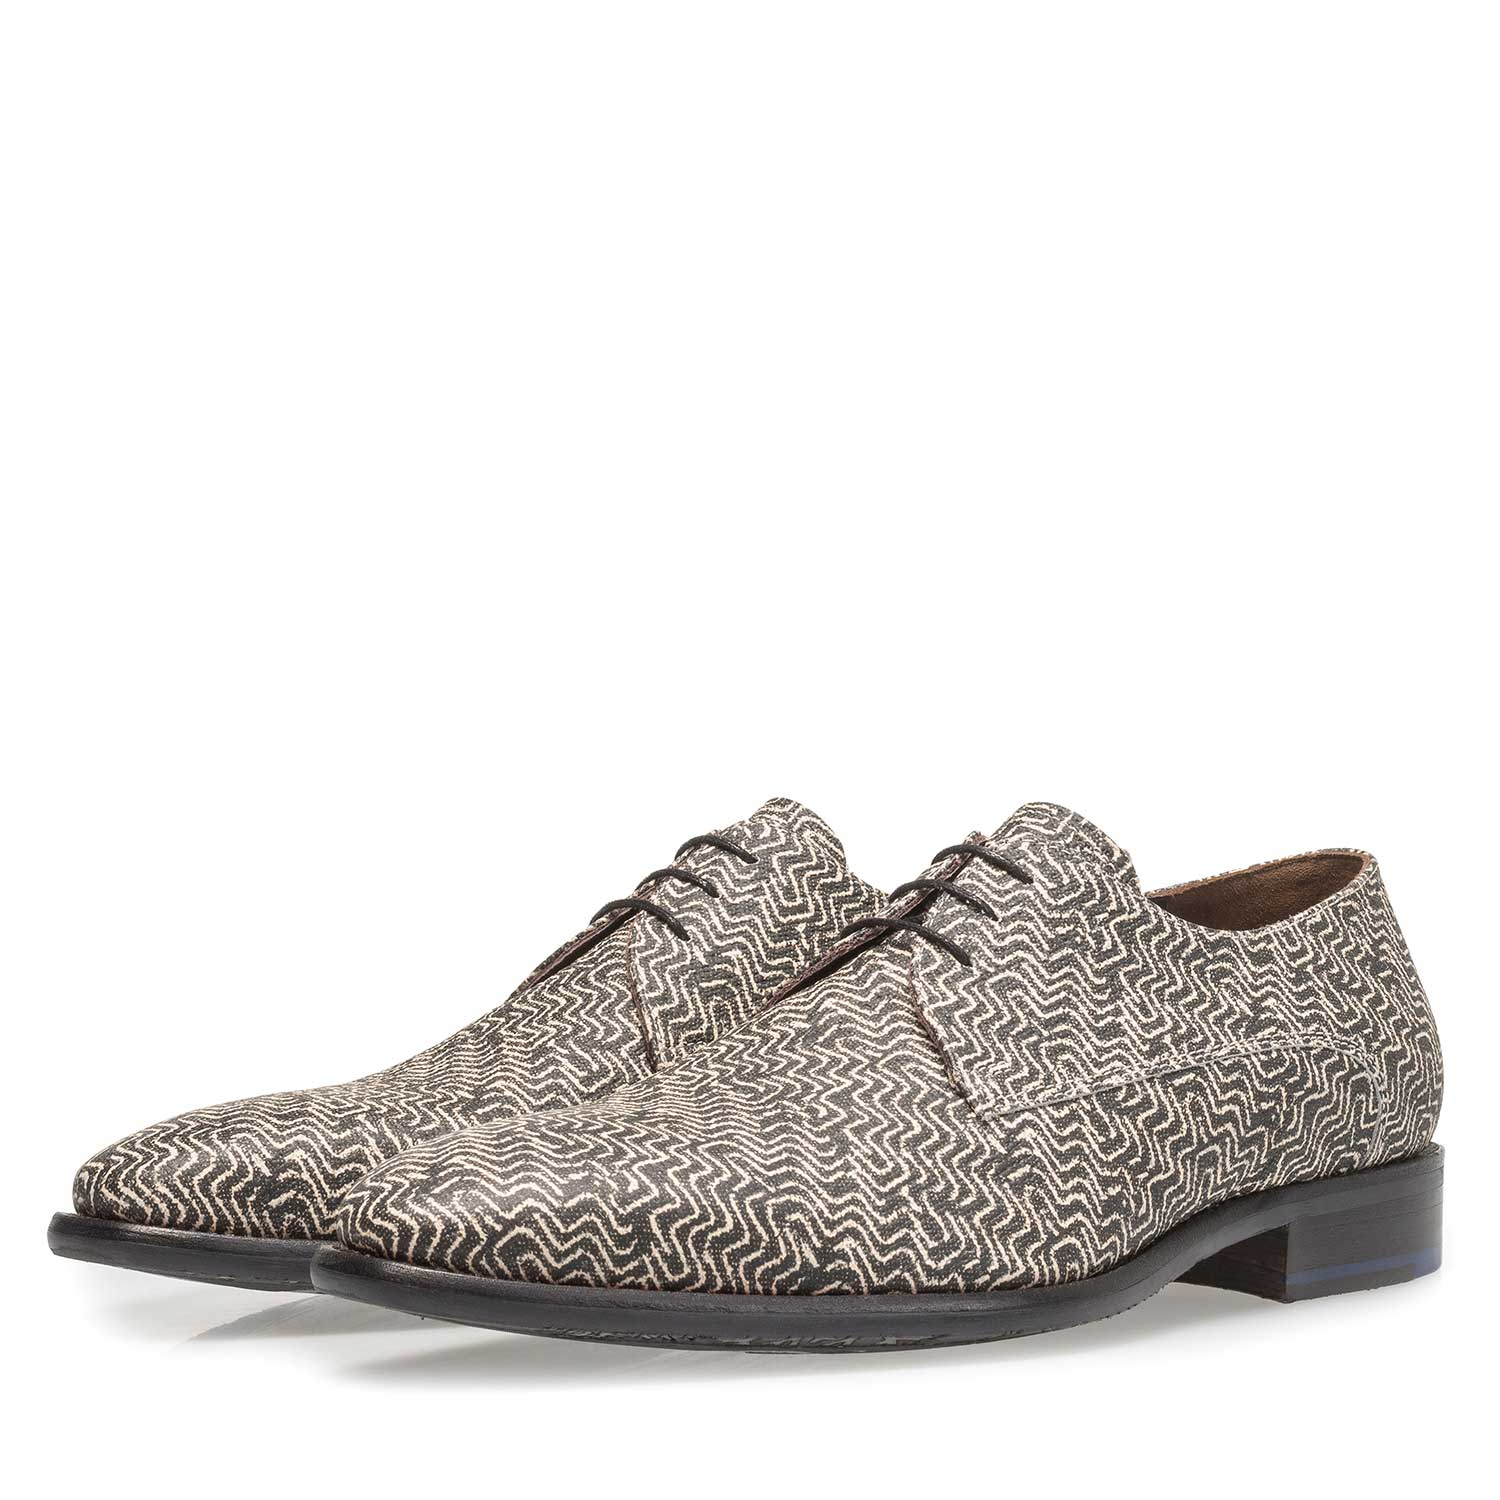 18146/01 - Grey leather lace shoe with graphic print